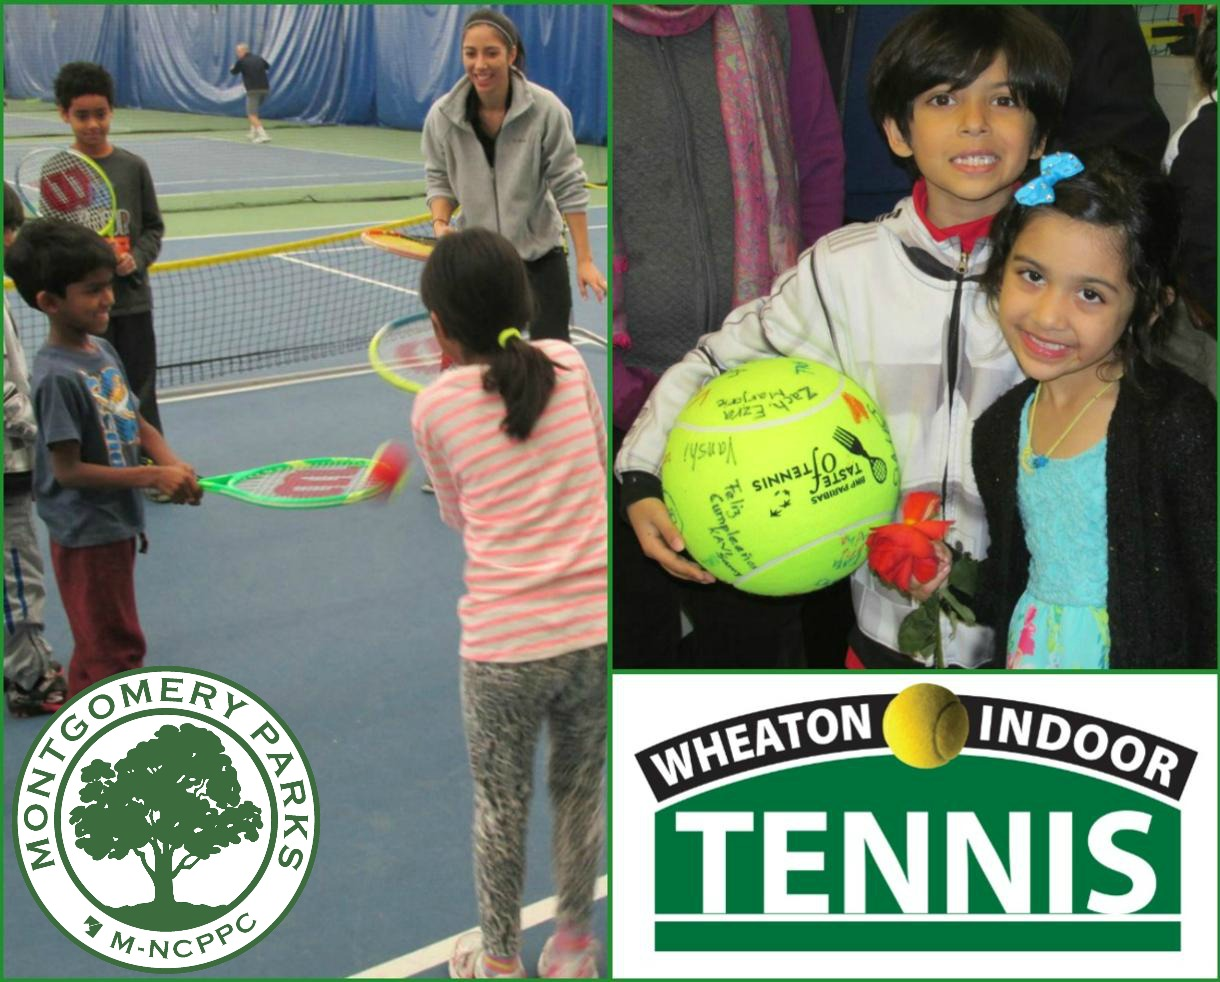 Tennis Birthday Party At Wheaton Indoor Tennis Center For Ages - Indoor games for birthday parties age 6